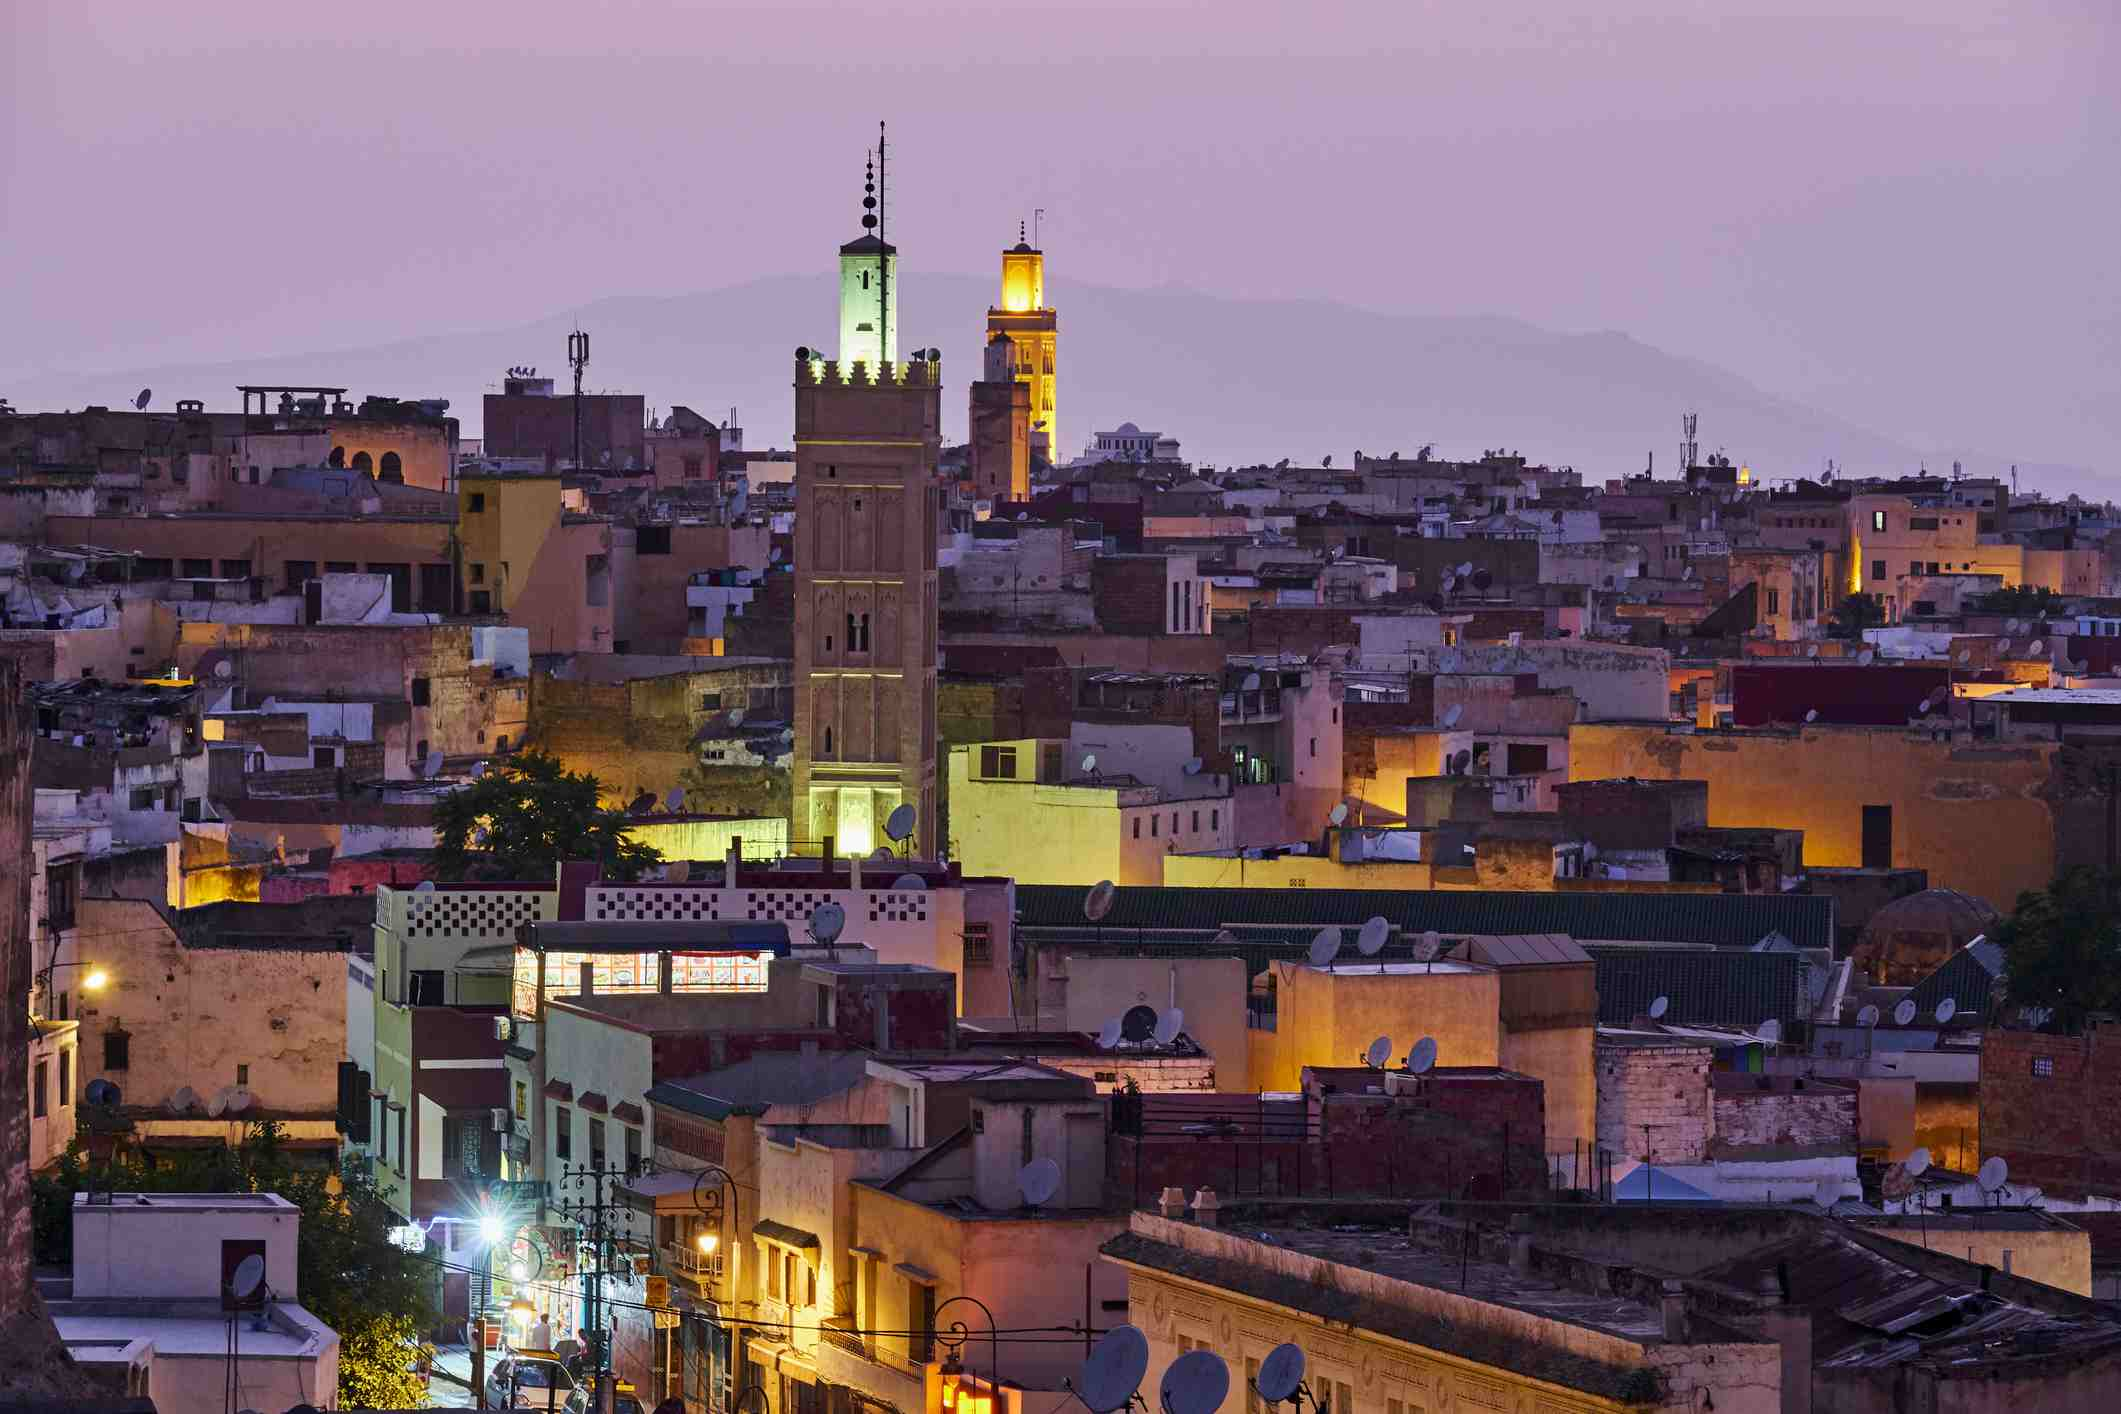 The medina of historic Meknes, an imperial city in Morocco